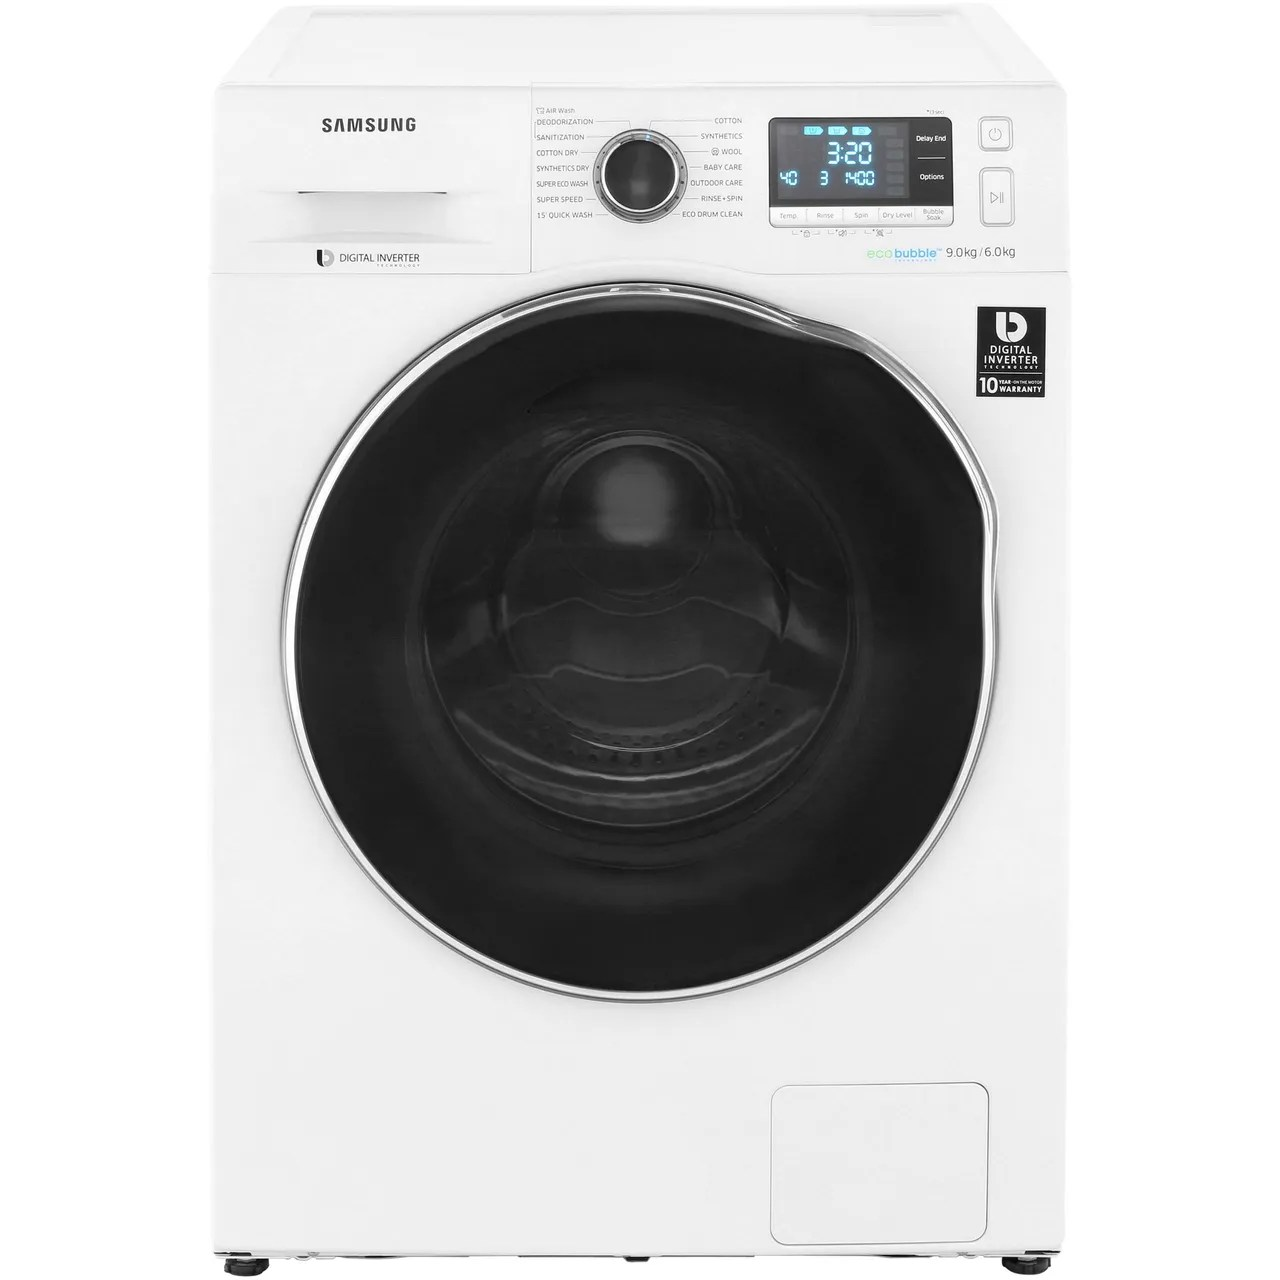 Samsung Wd90j6a10aw 9 6kg Ecobubble Washer Dryer Ao Com